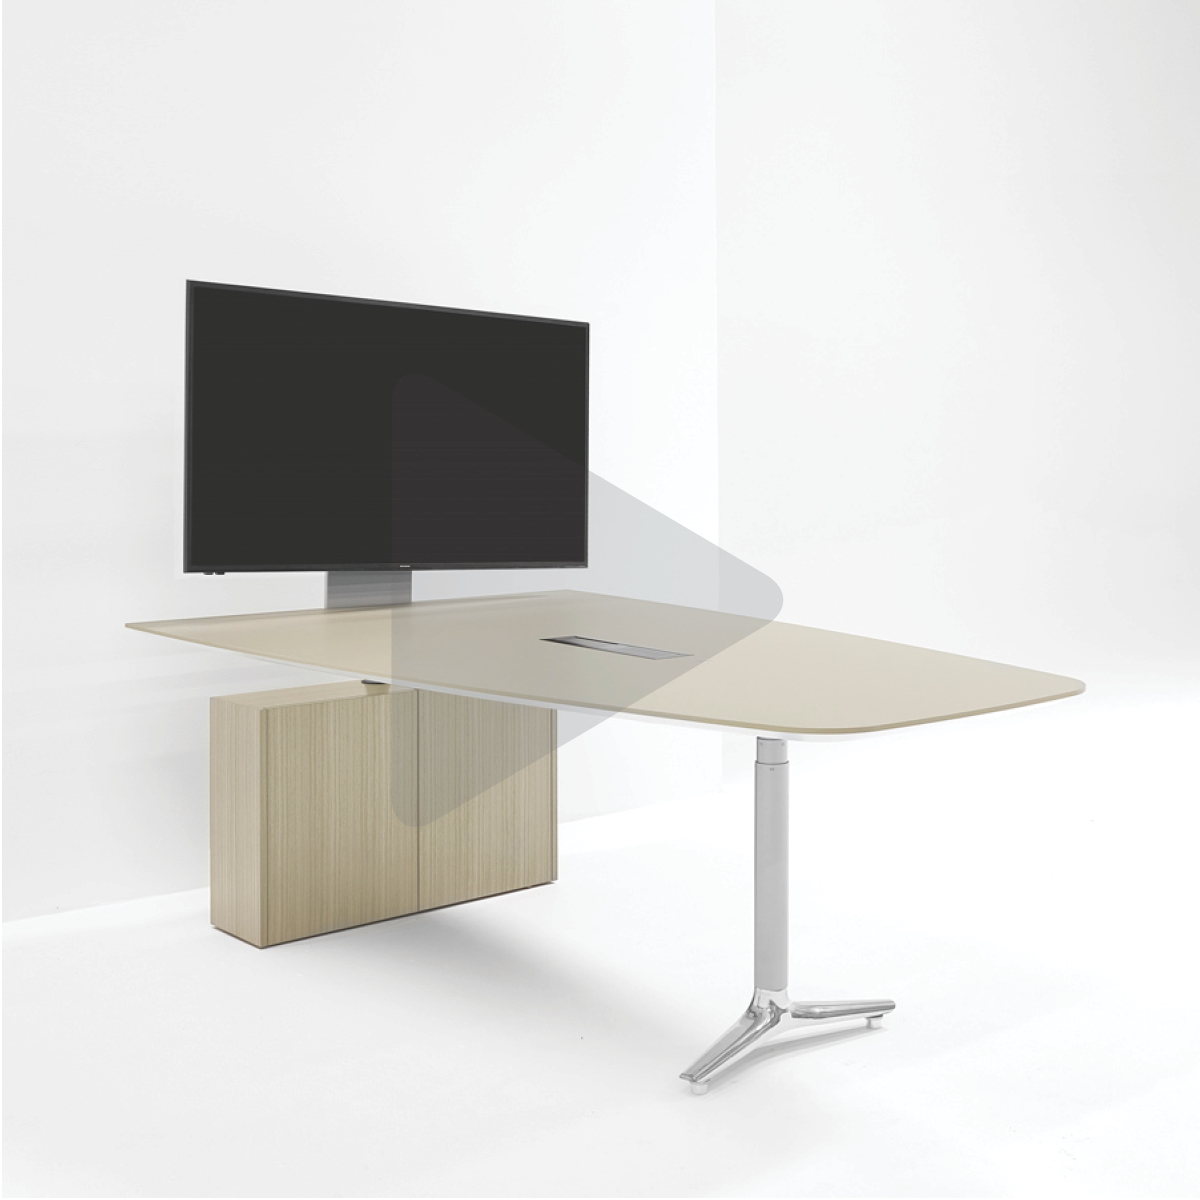 Nienkamper Height Adjustable Table with Access Base